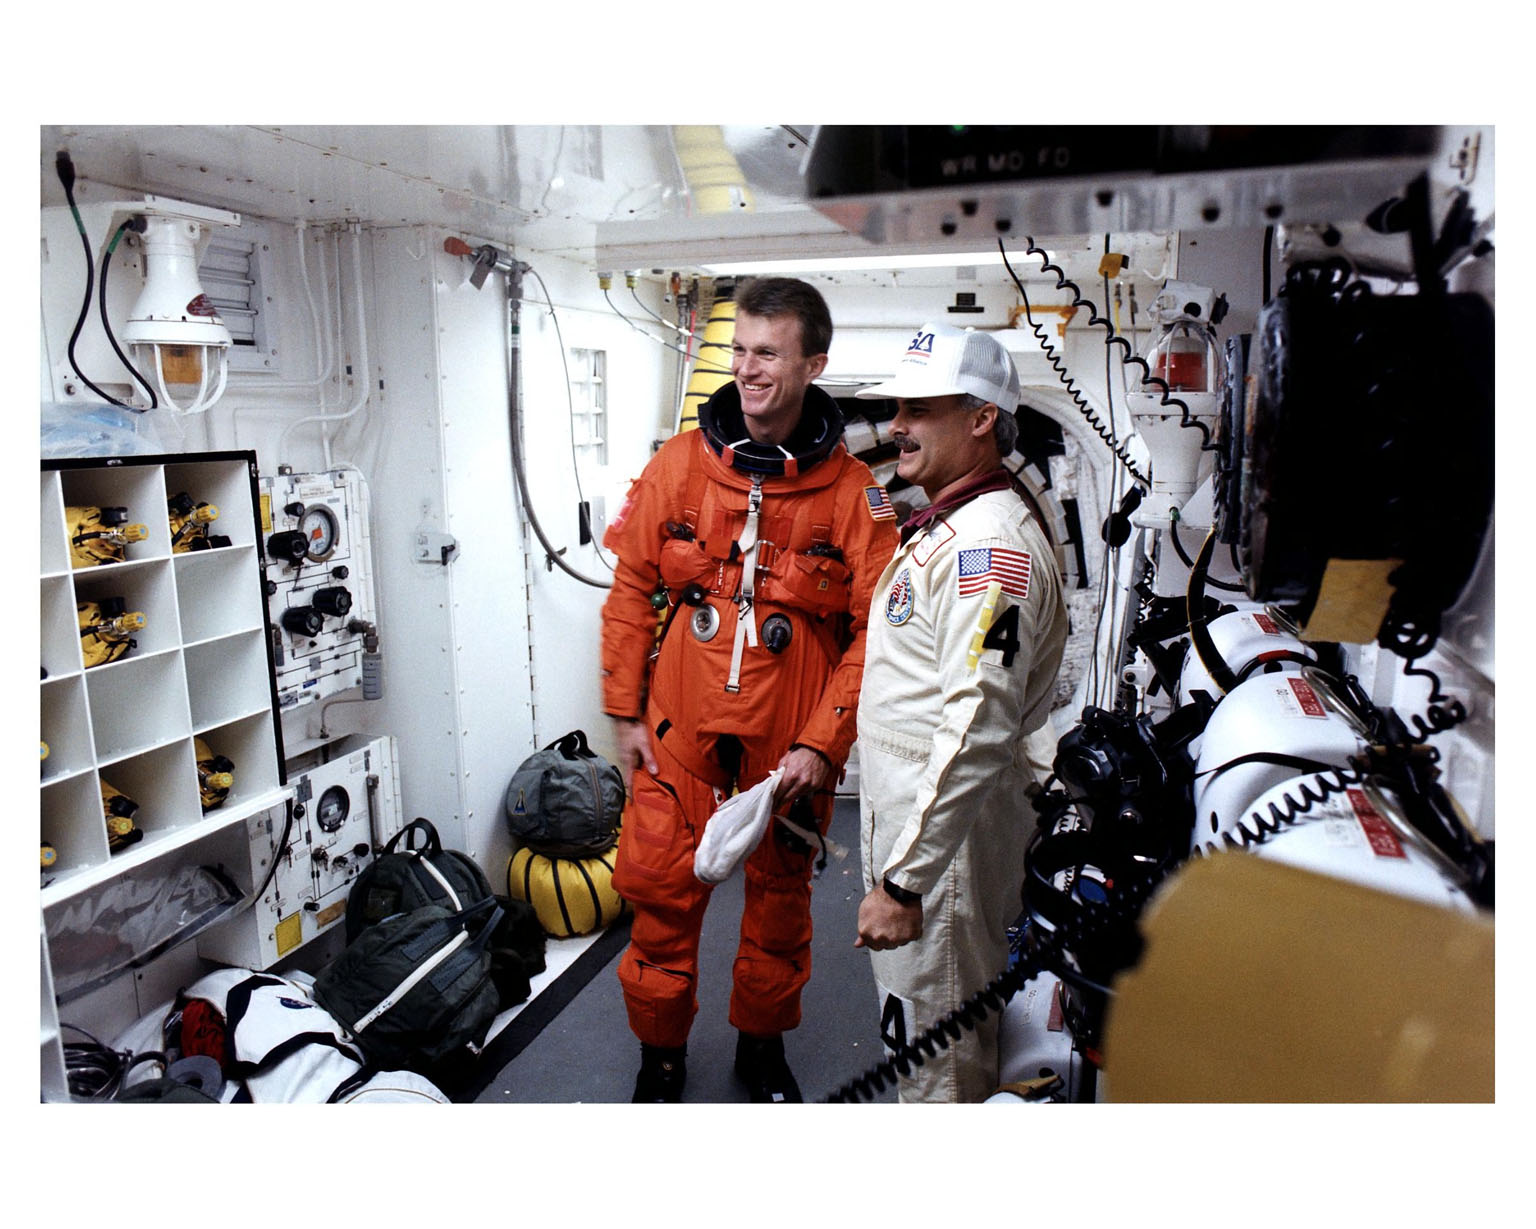 Pilot Jett talks to members of the suiting crew in the white room at Pad 39B before entering the Space Shuttle Atlantis for launch of the STS-81 mission